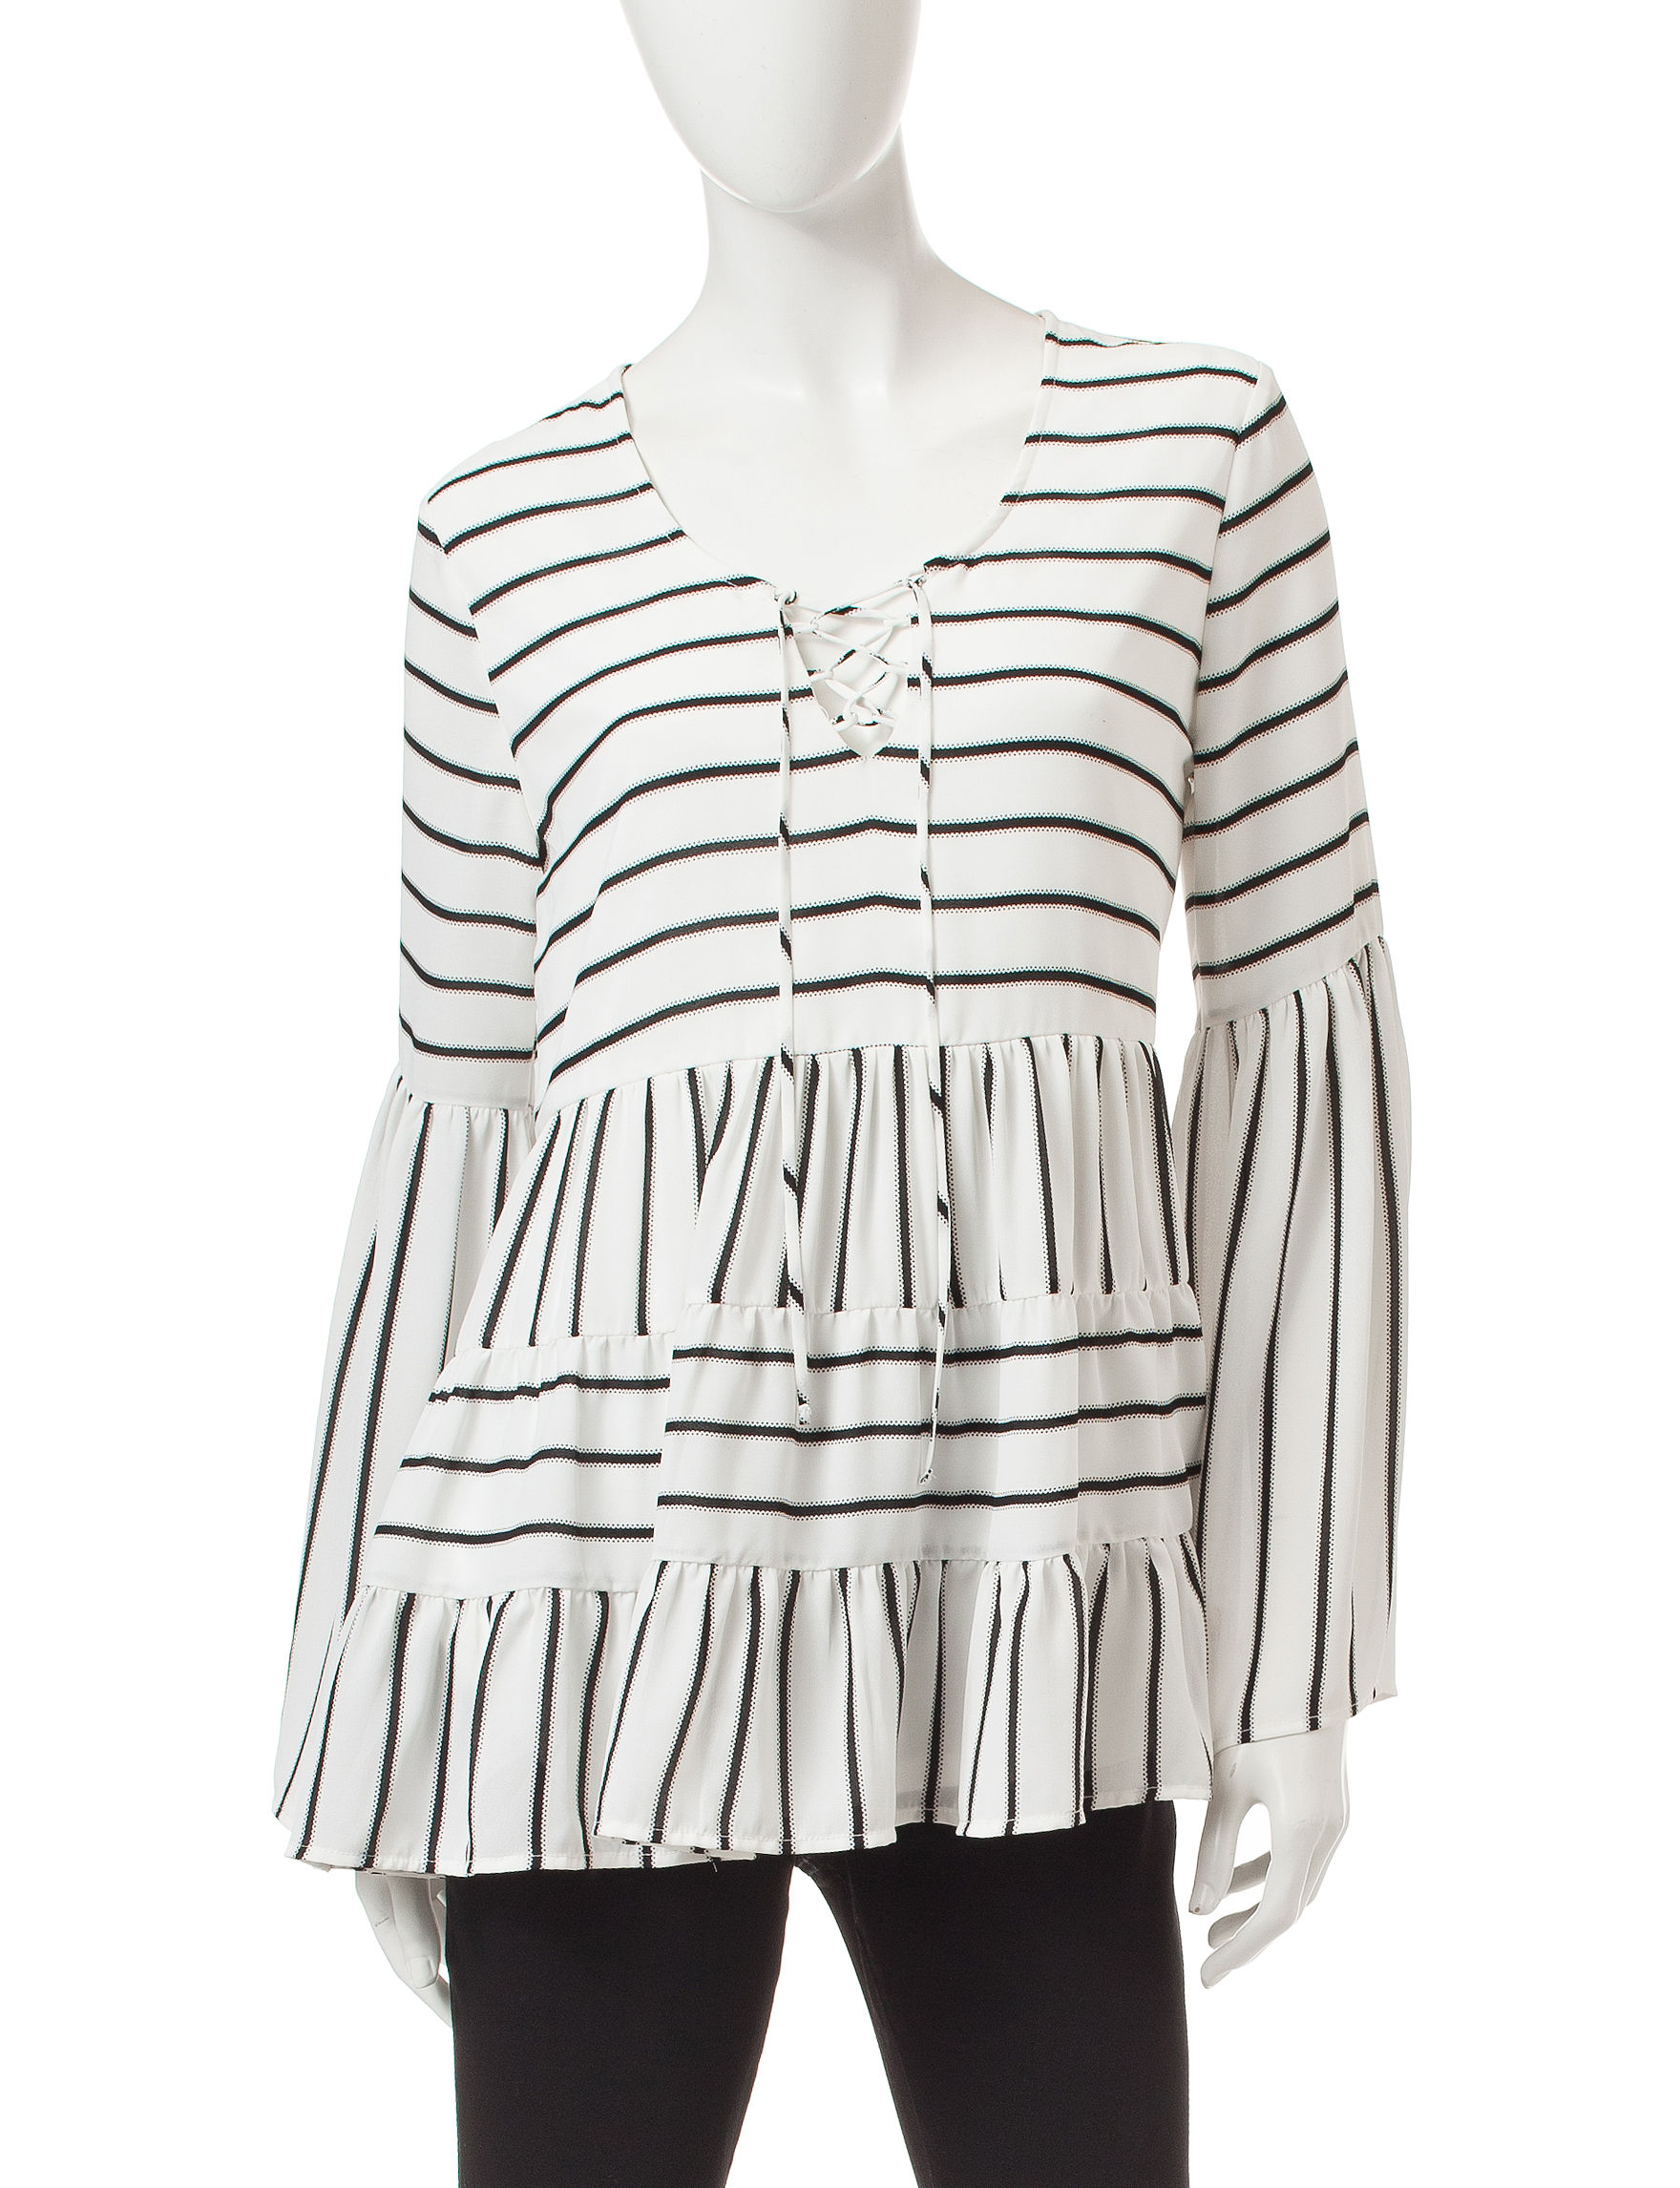 Signature Studio Black / White Shirts & Blouses